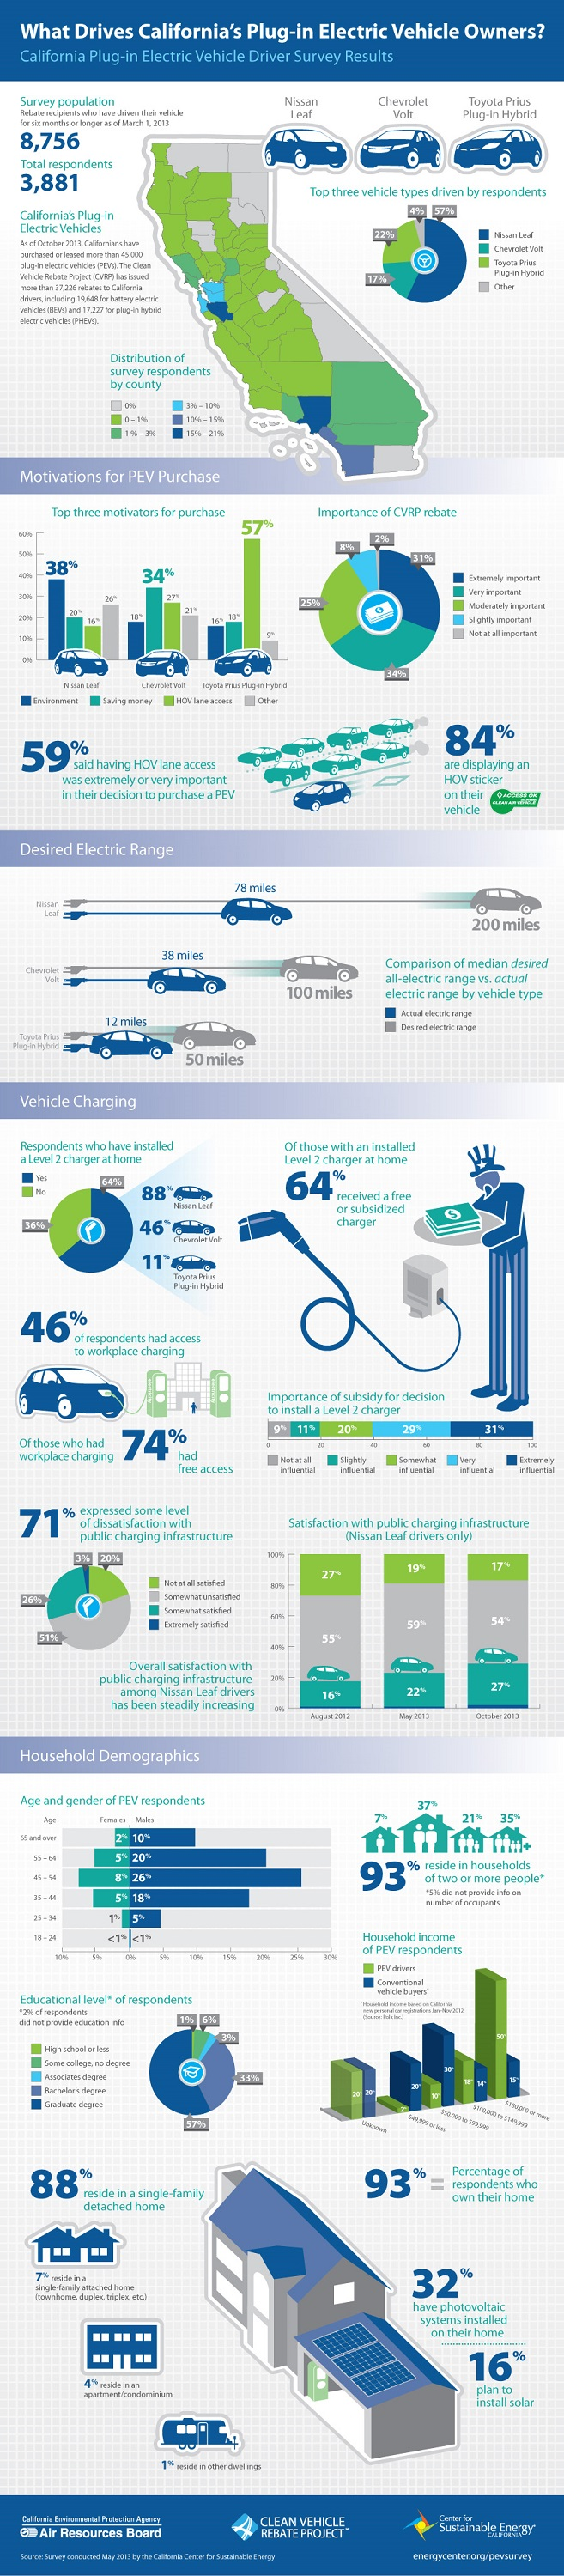 california plug in electric vehicle driver survey results ca ctr for sustainable energy mar 2013 100458148 l